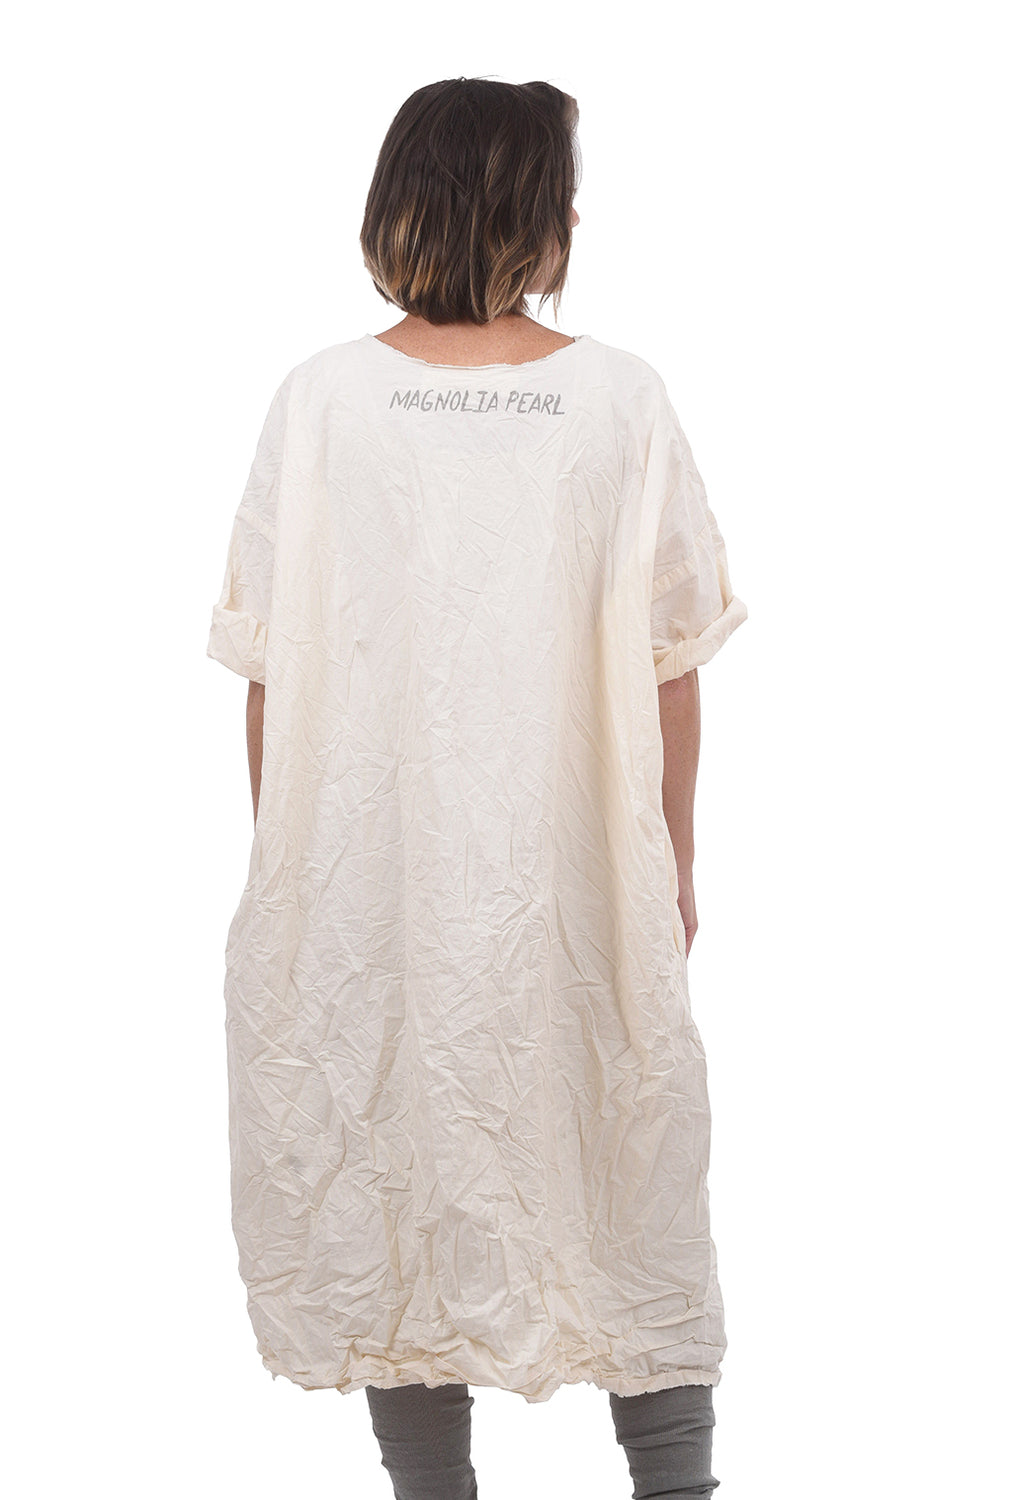 Magnolia Pearl Immaculate Mary Dress, Natural One Size Off-White